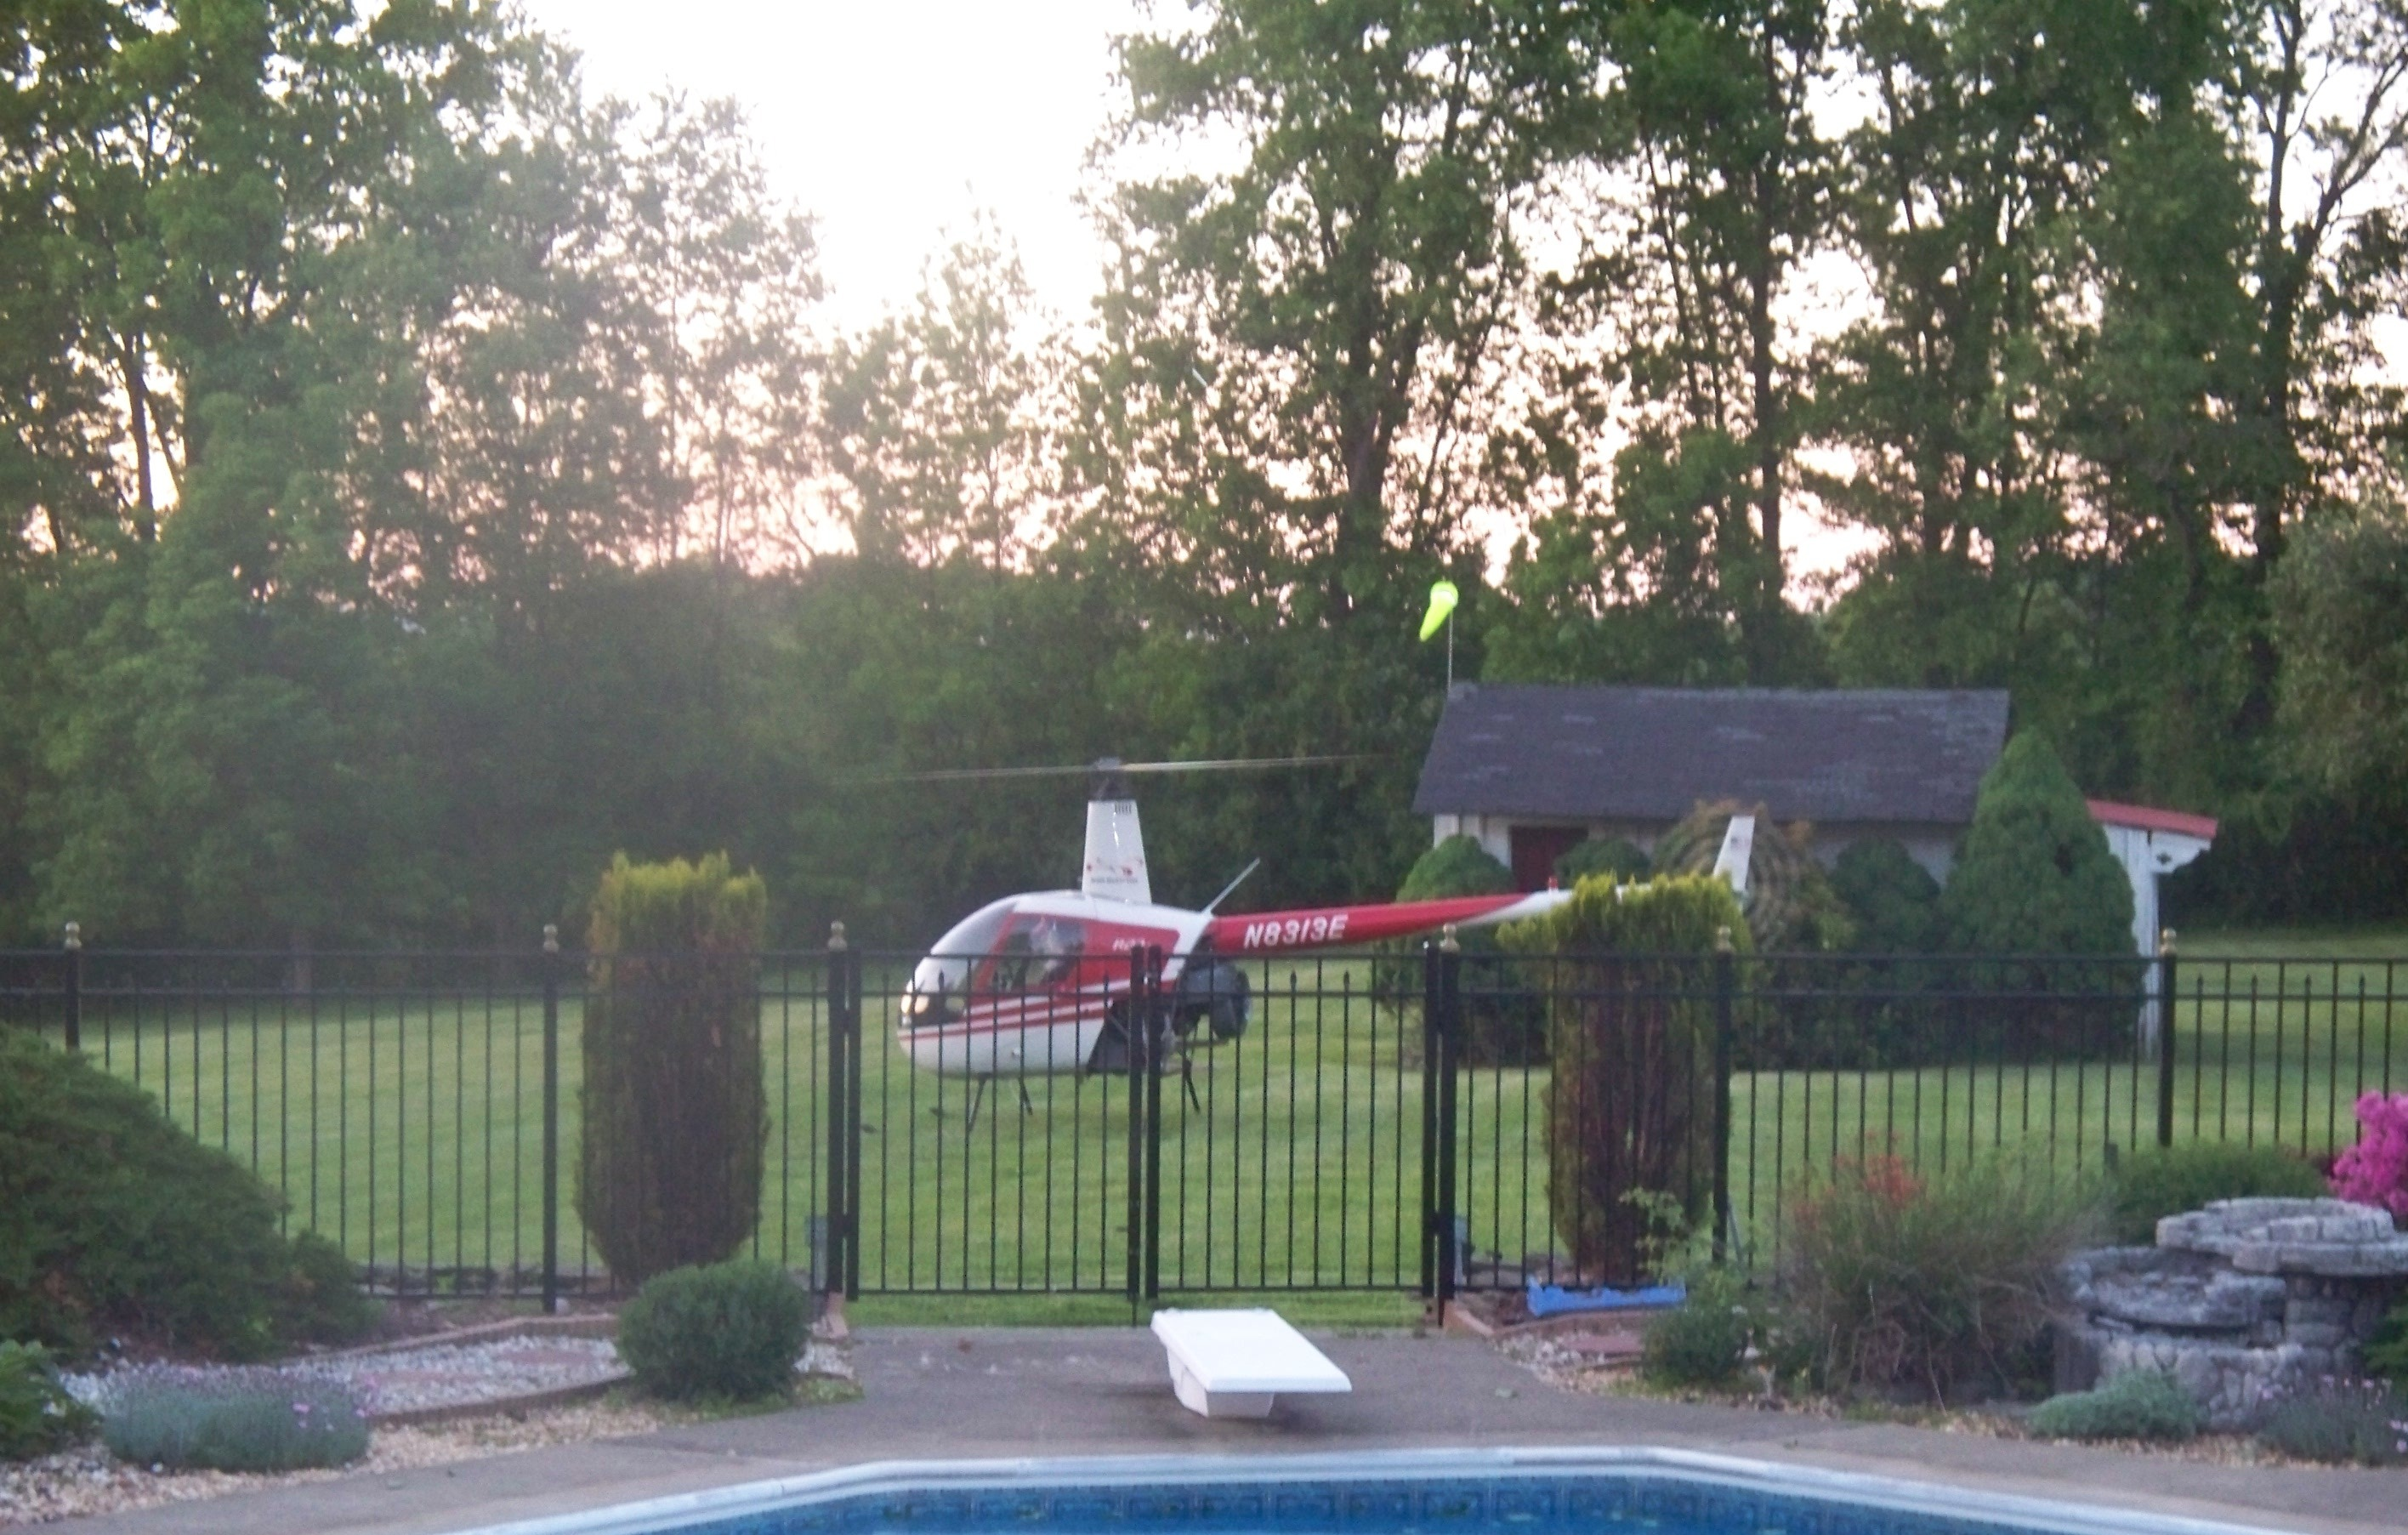 Land A Helicopter Seriously The Dominion House Bed And